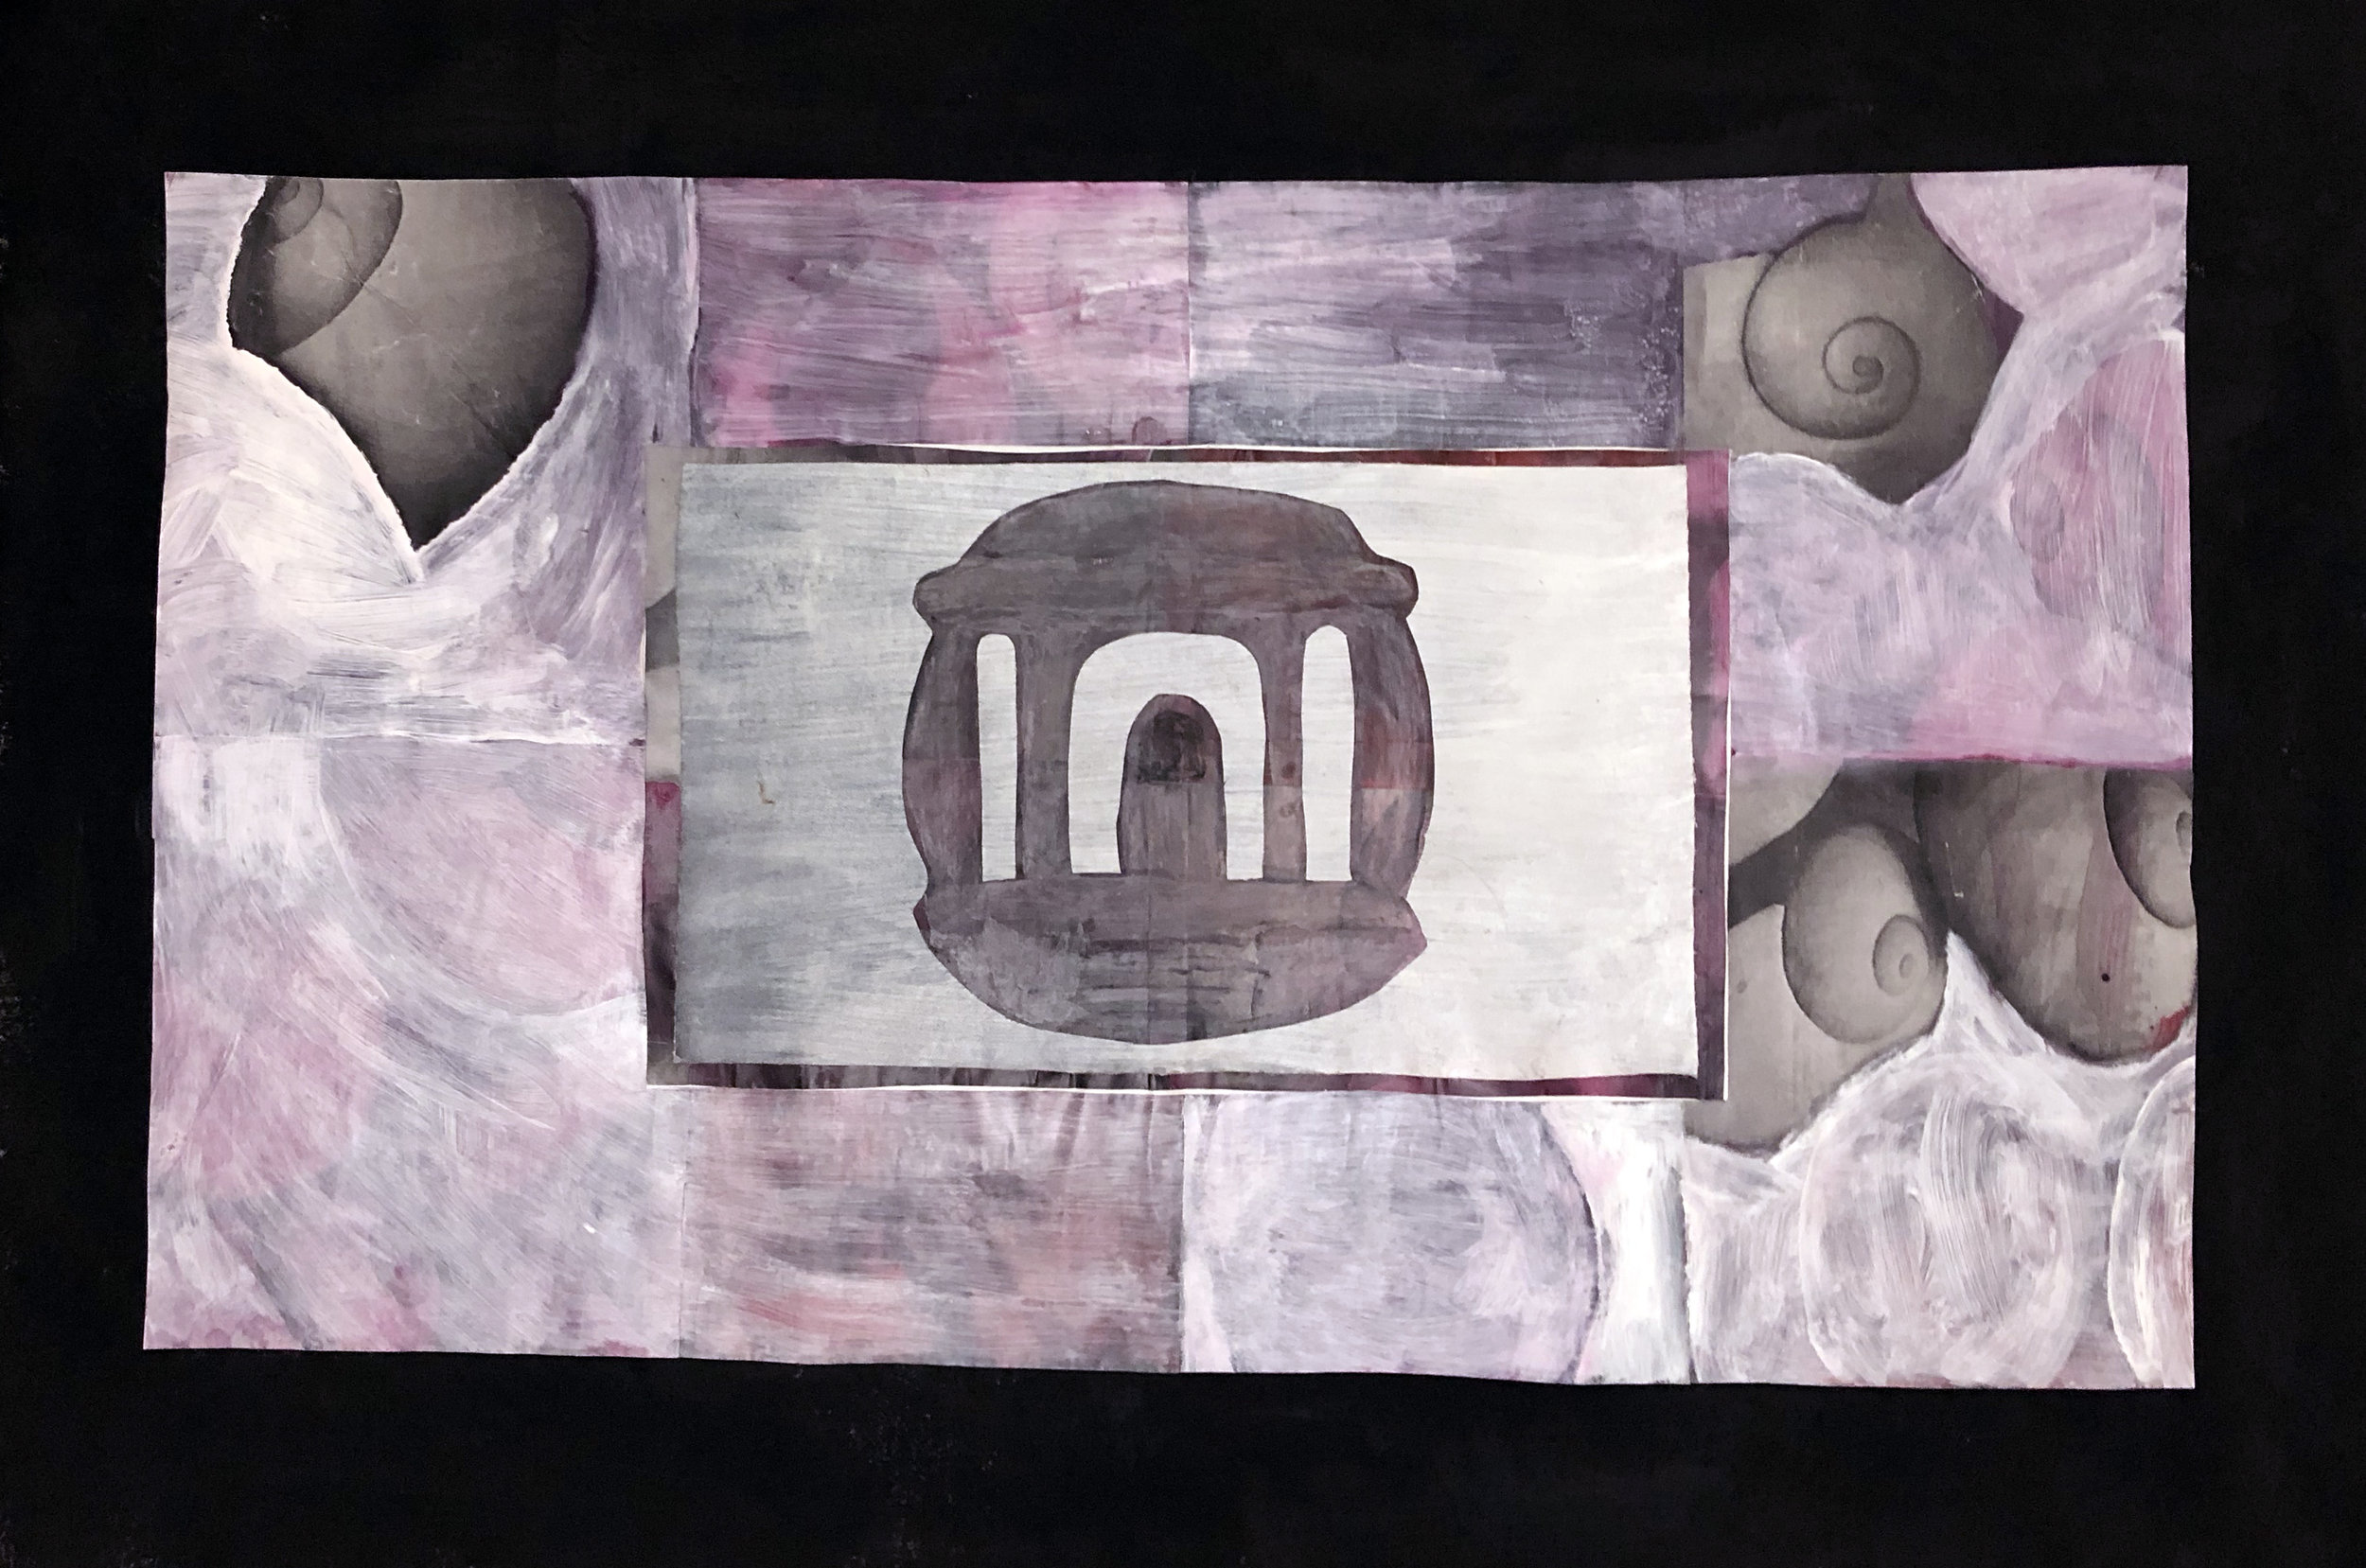 TonyMichaleEstrada - Welcome Home II - assemblage_ cut out pastel drawing on acrylics on canvas with photo print collage border with pastesl and gesso - 24.5 x 36 - 2018 - $400.jpg